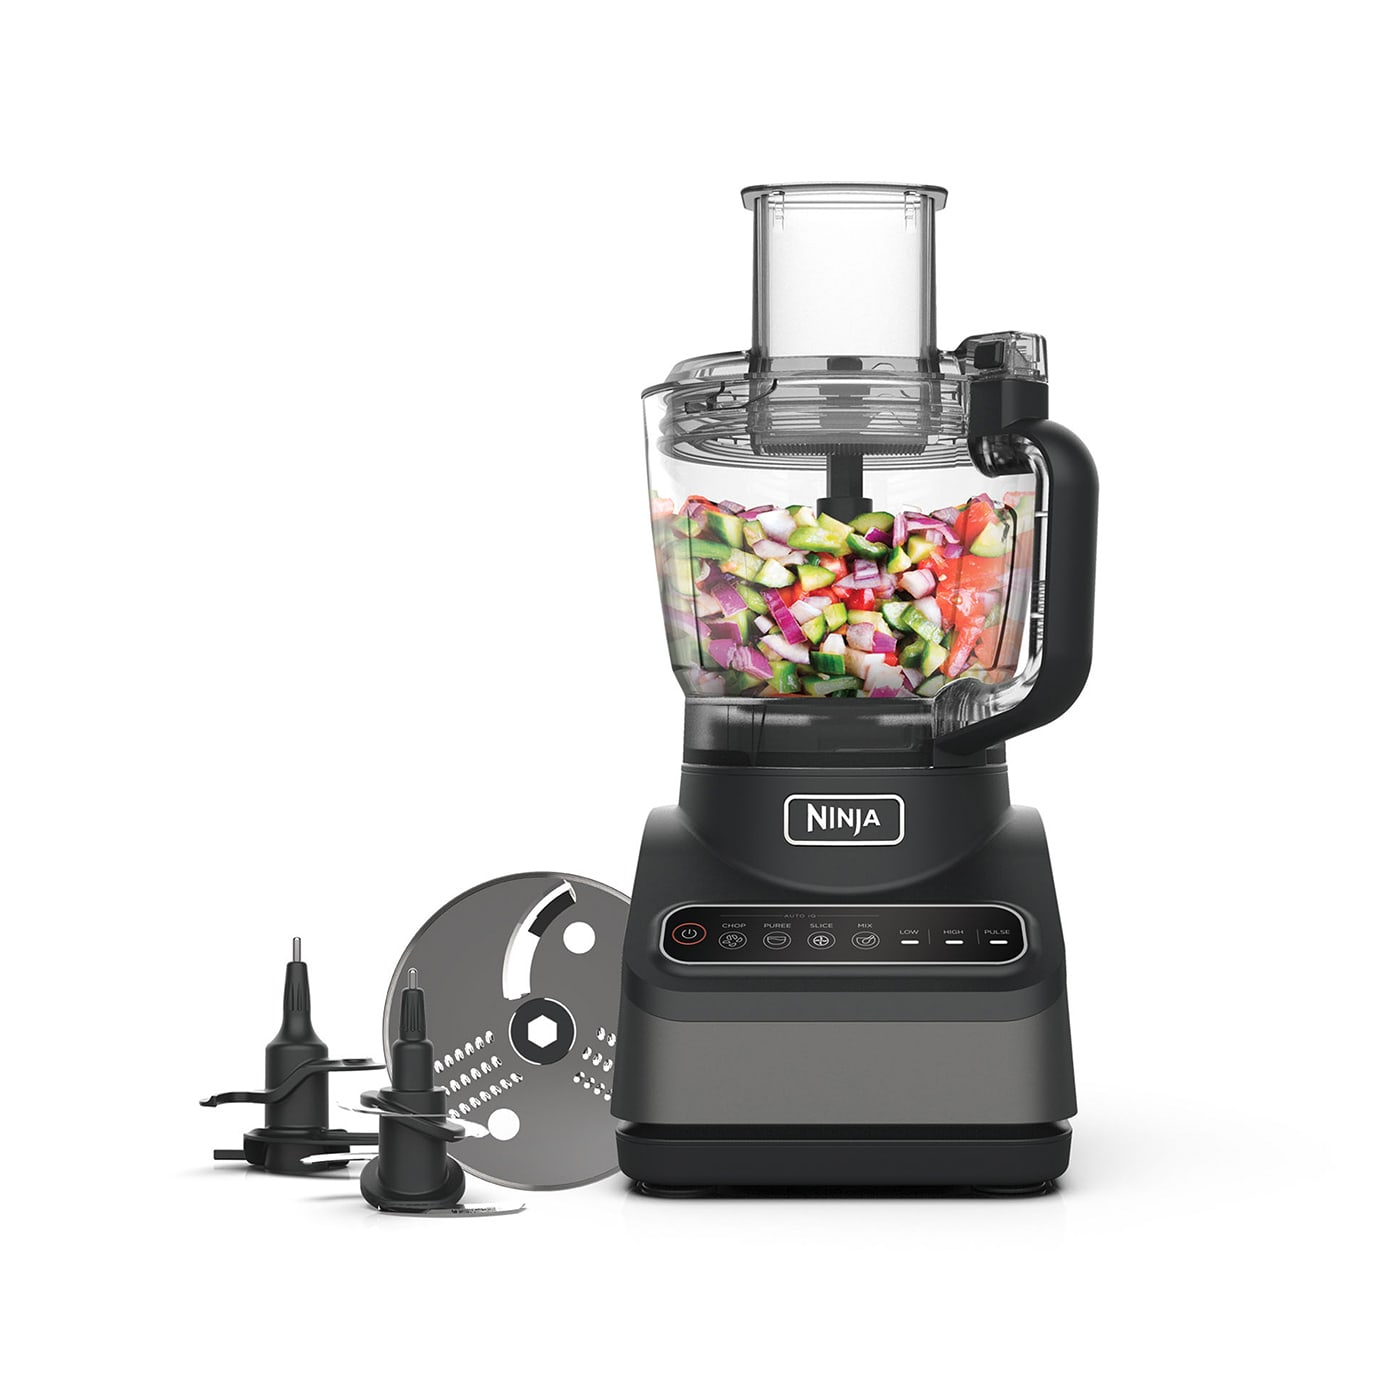 Navigate to Ninja Food Processors